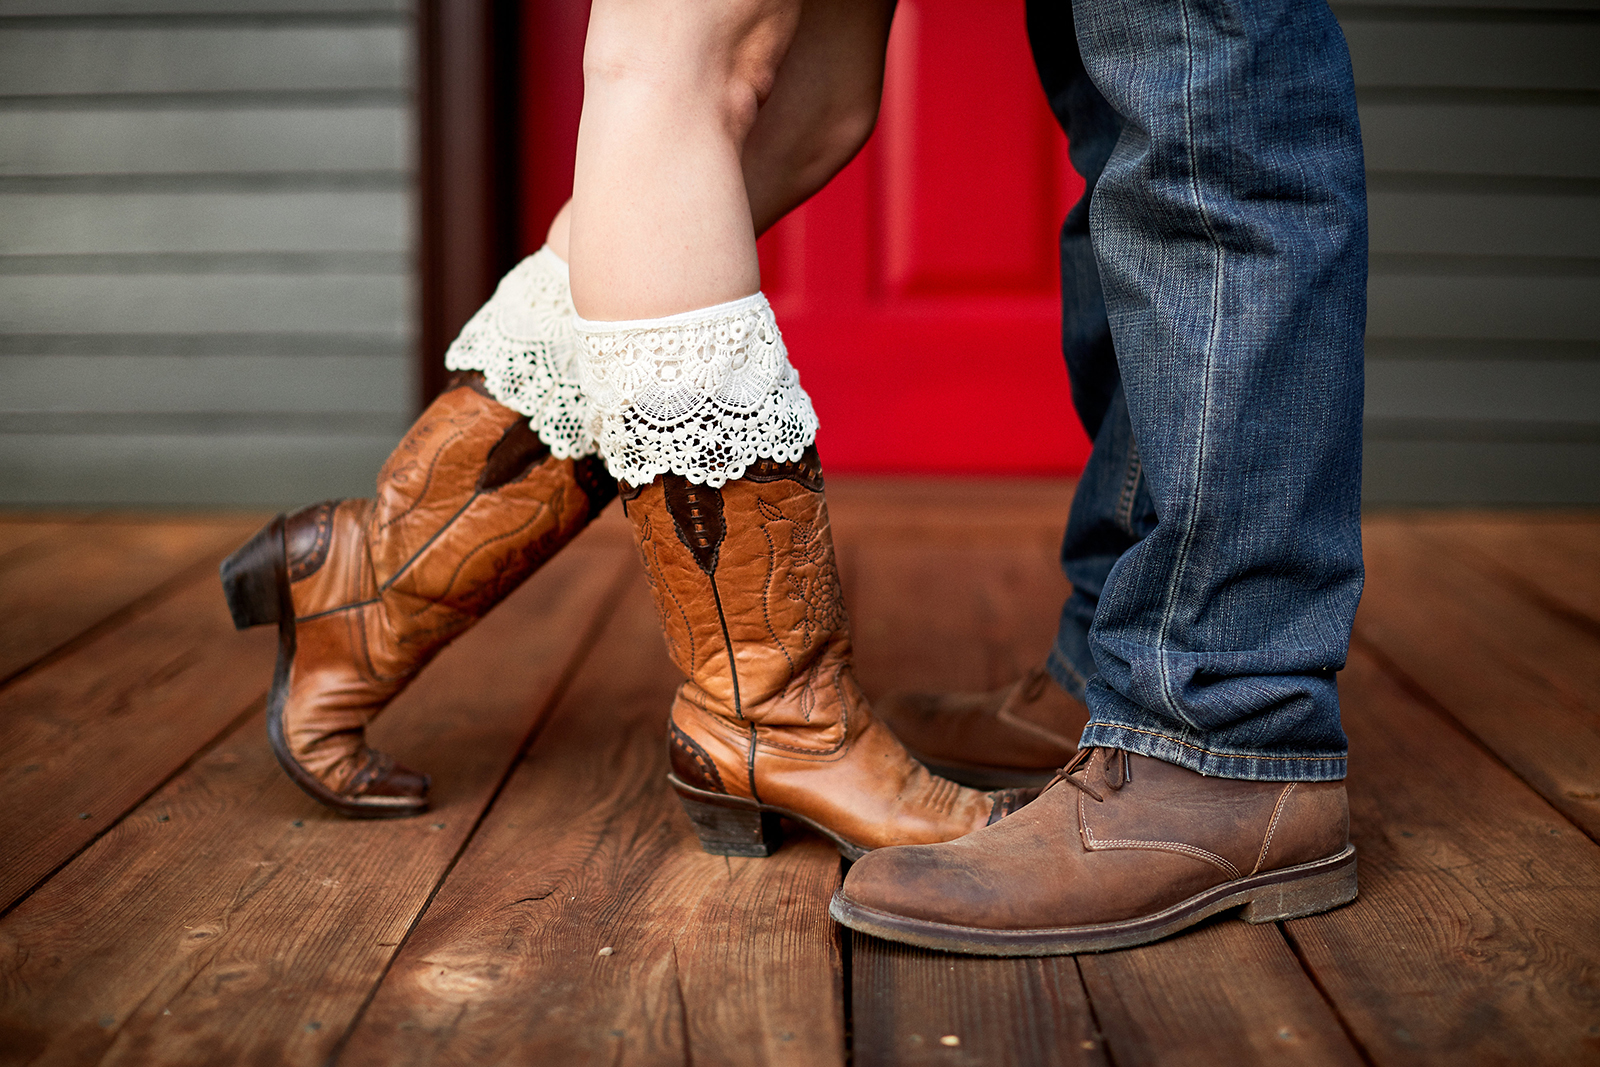 Daniel Boone Home Engagement Session in St Charles County by Oldani Photography St. Louis Wedding Photographers33.jpg